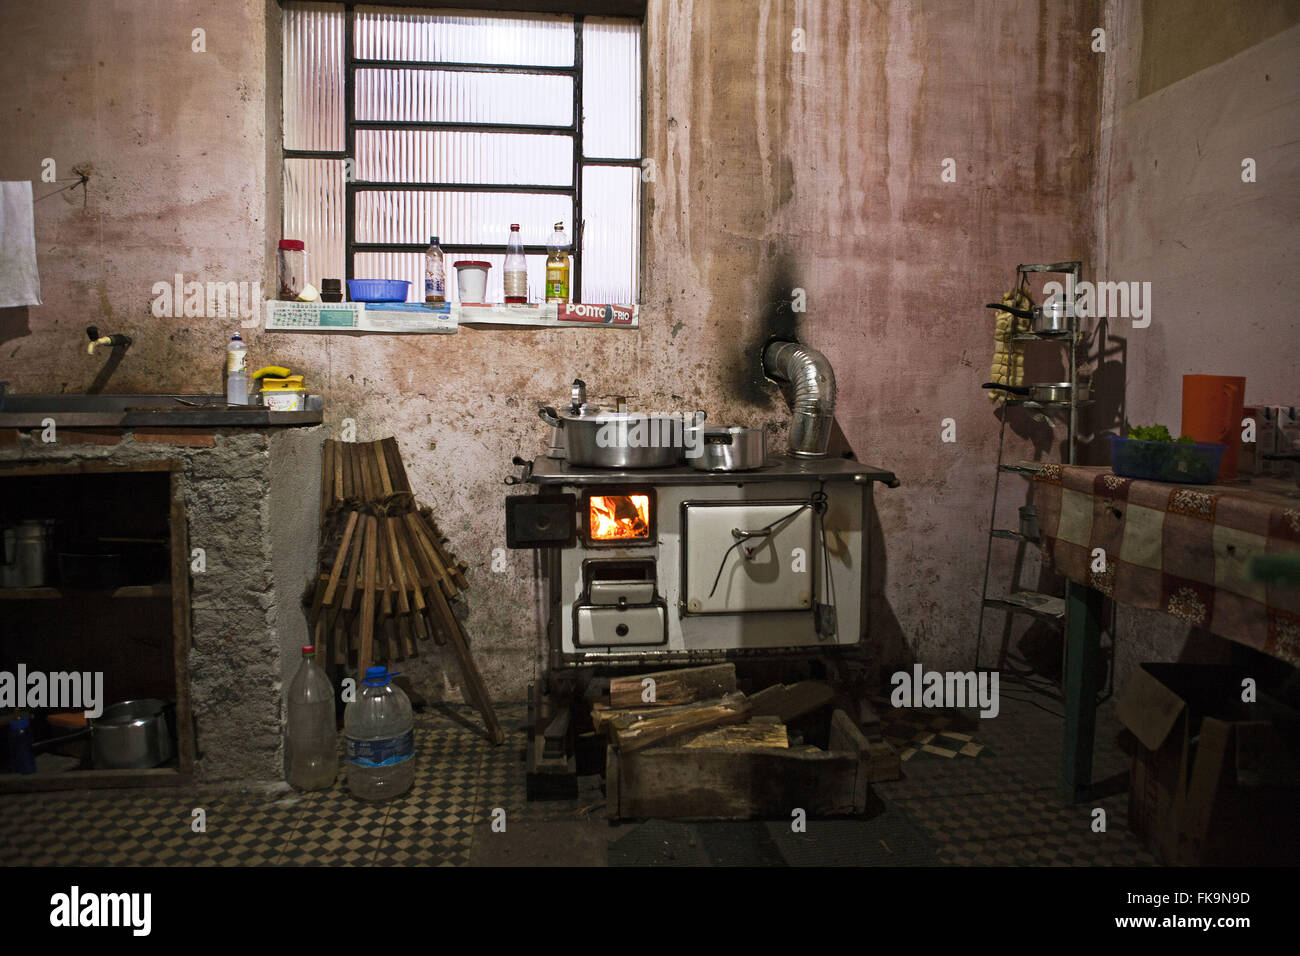 Kitchen foreman in farm livestock in the rural town of Sao Gabriel - RS - Stock Image